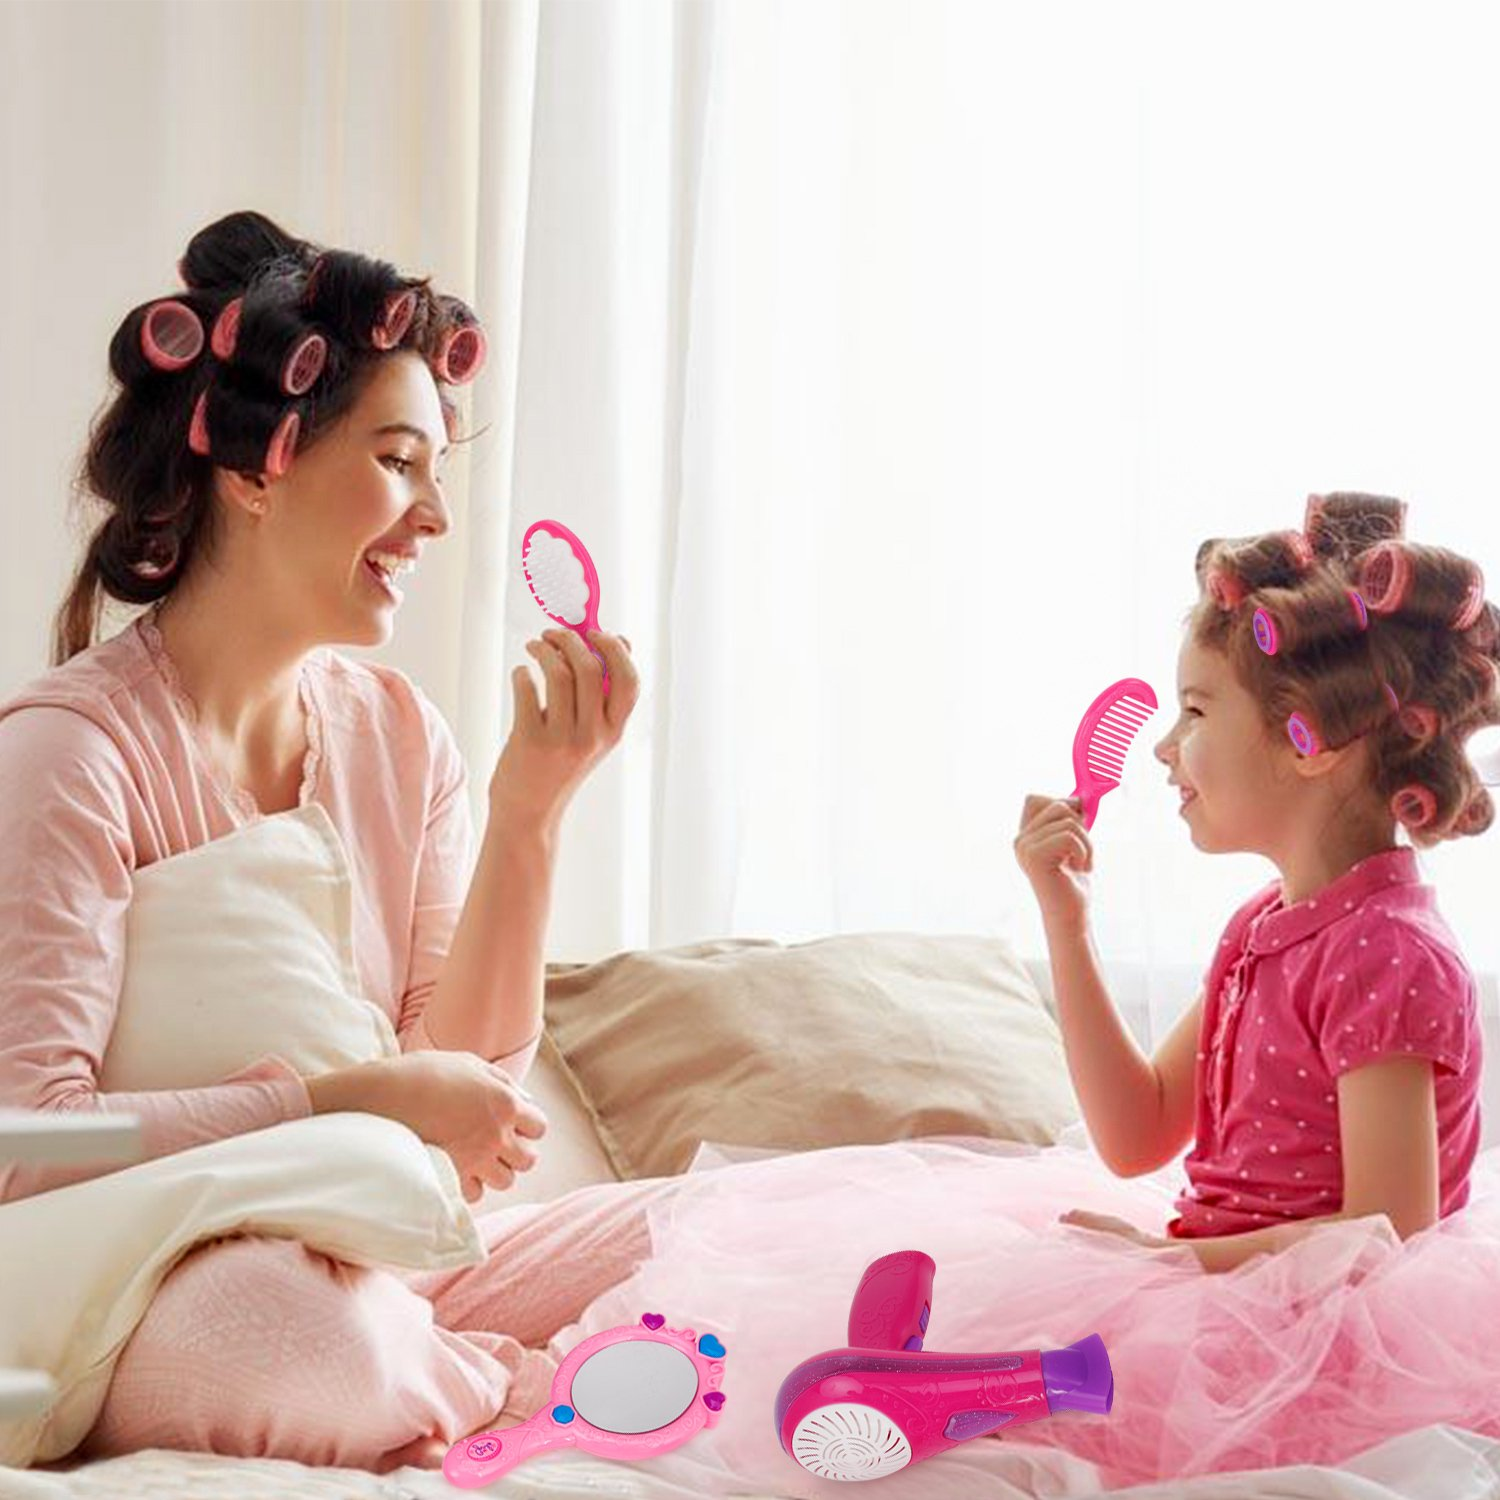 Liberty Imports Vogue Girls Beauty Salon Fashion Play Set with Hairdryer, Mirror & Styling Accessories by Liberty Imports (Image #7)